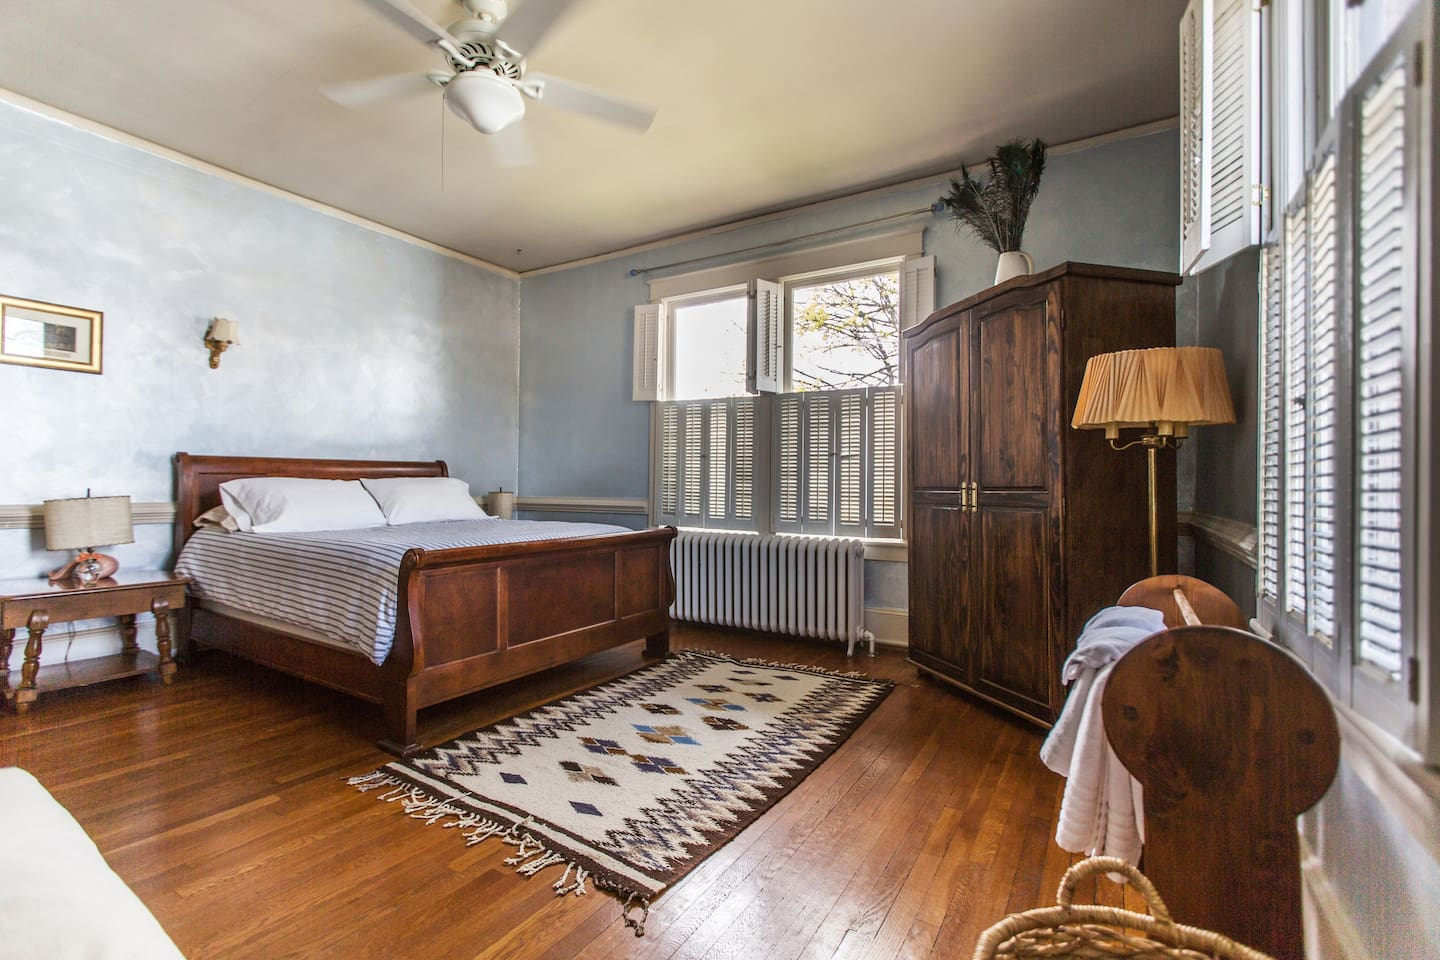 Your West Park Gardens downtown getaway begins with a super comfortable queen bed,  fresh towels, 300+ channels of digital TV, free WiFi, dresser, in-room AC, and large, bright windows. For larger groups, book the Spacious King. #culpeperairbnb